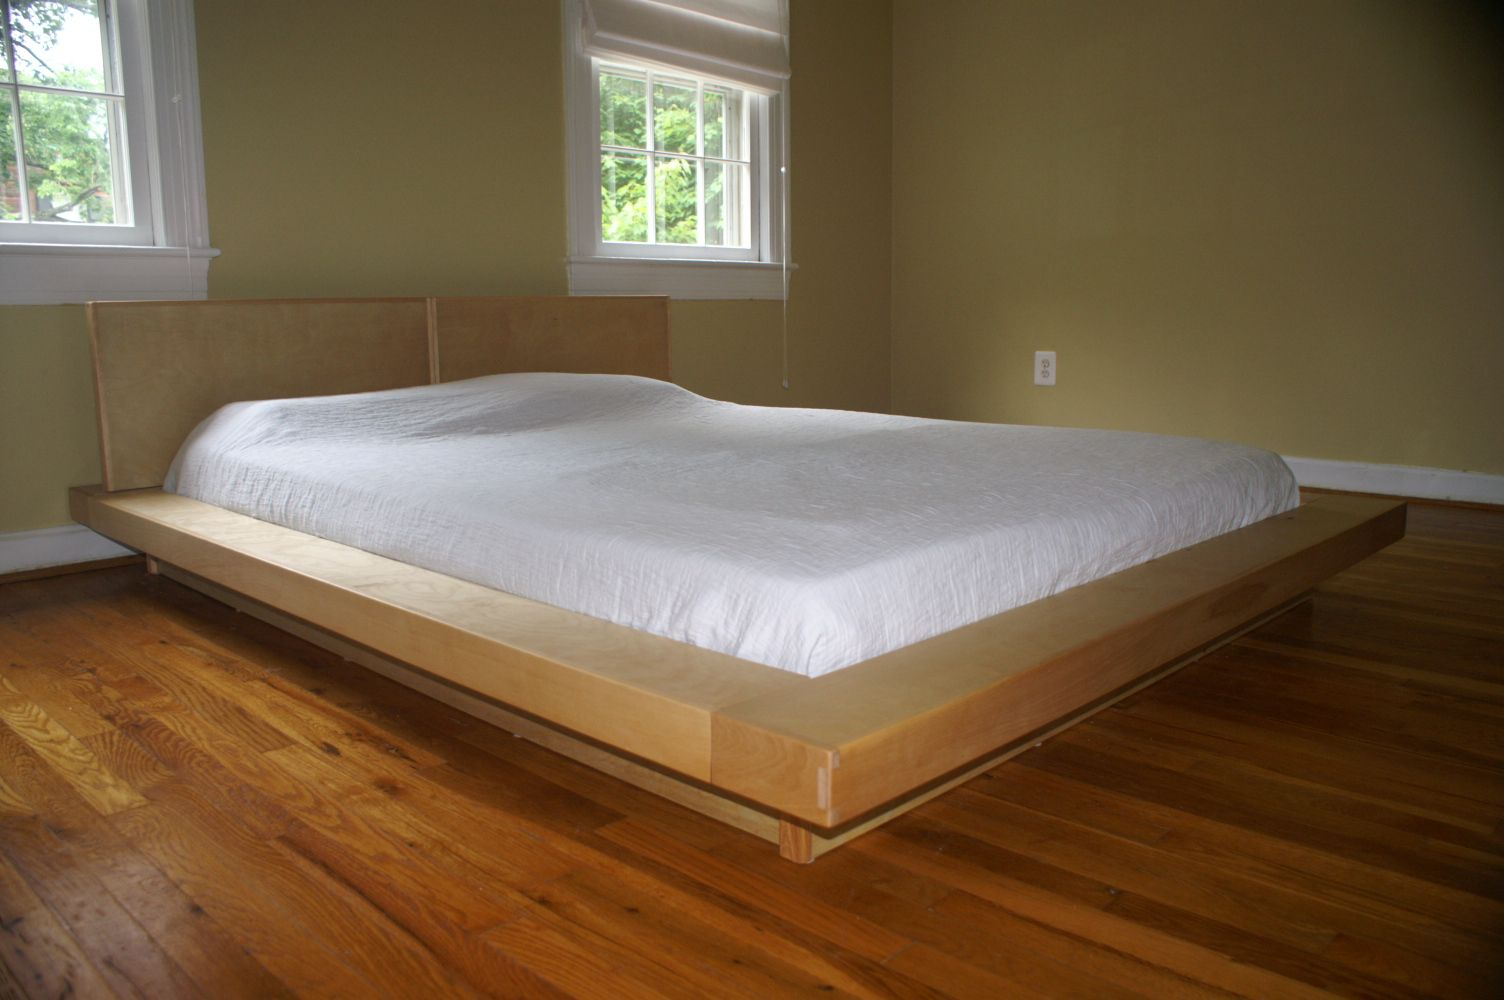 Handmade Queen Size Platform Bedframe Bed By Edward